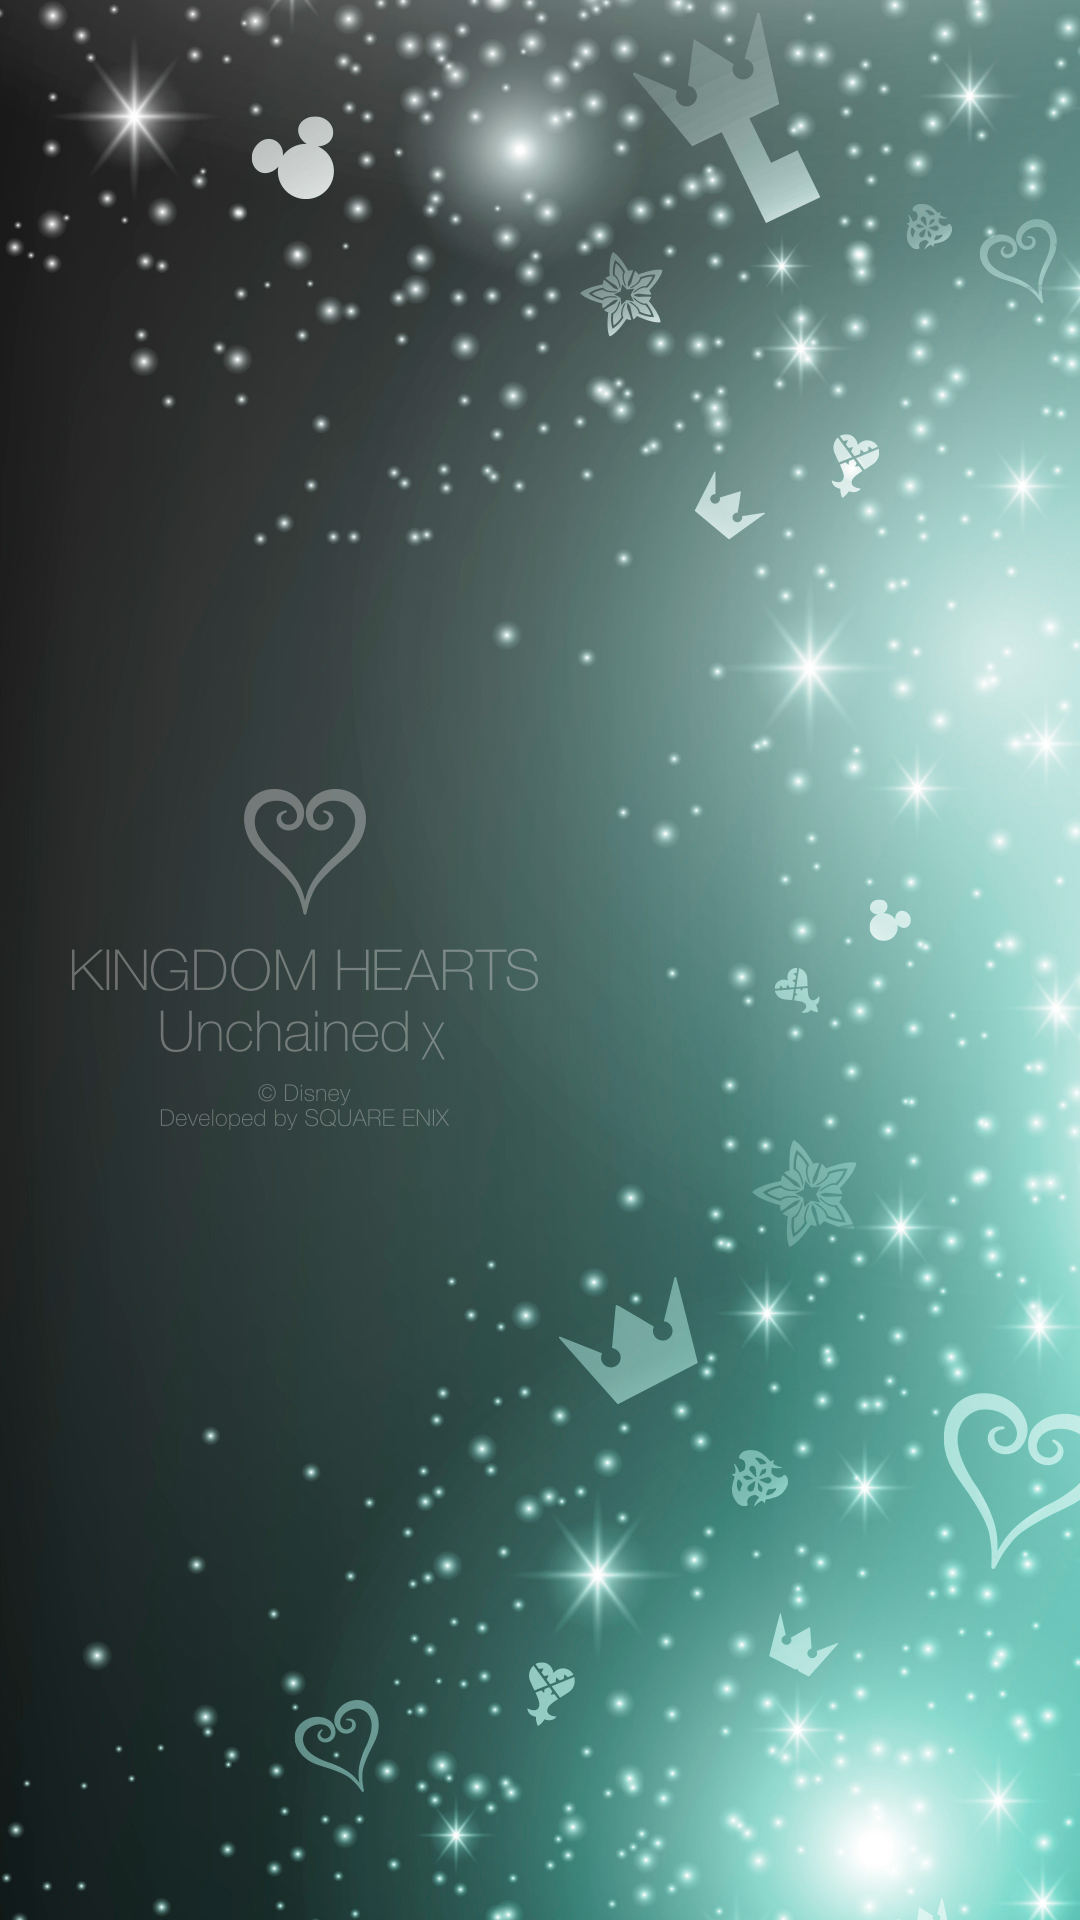 Kingdom Hearts Unchained χ | iPhone Wallpaper